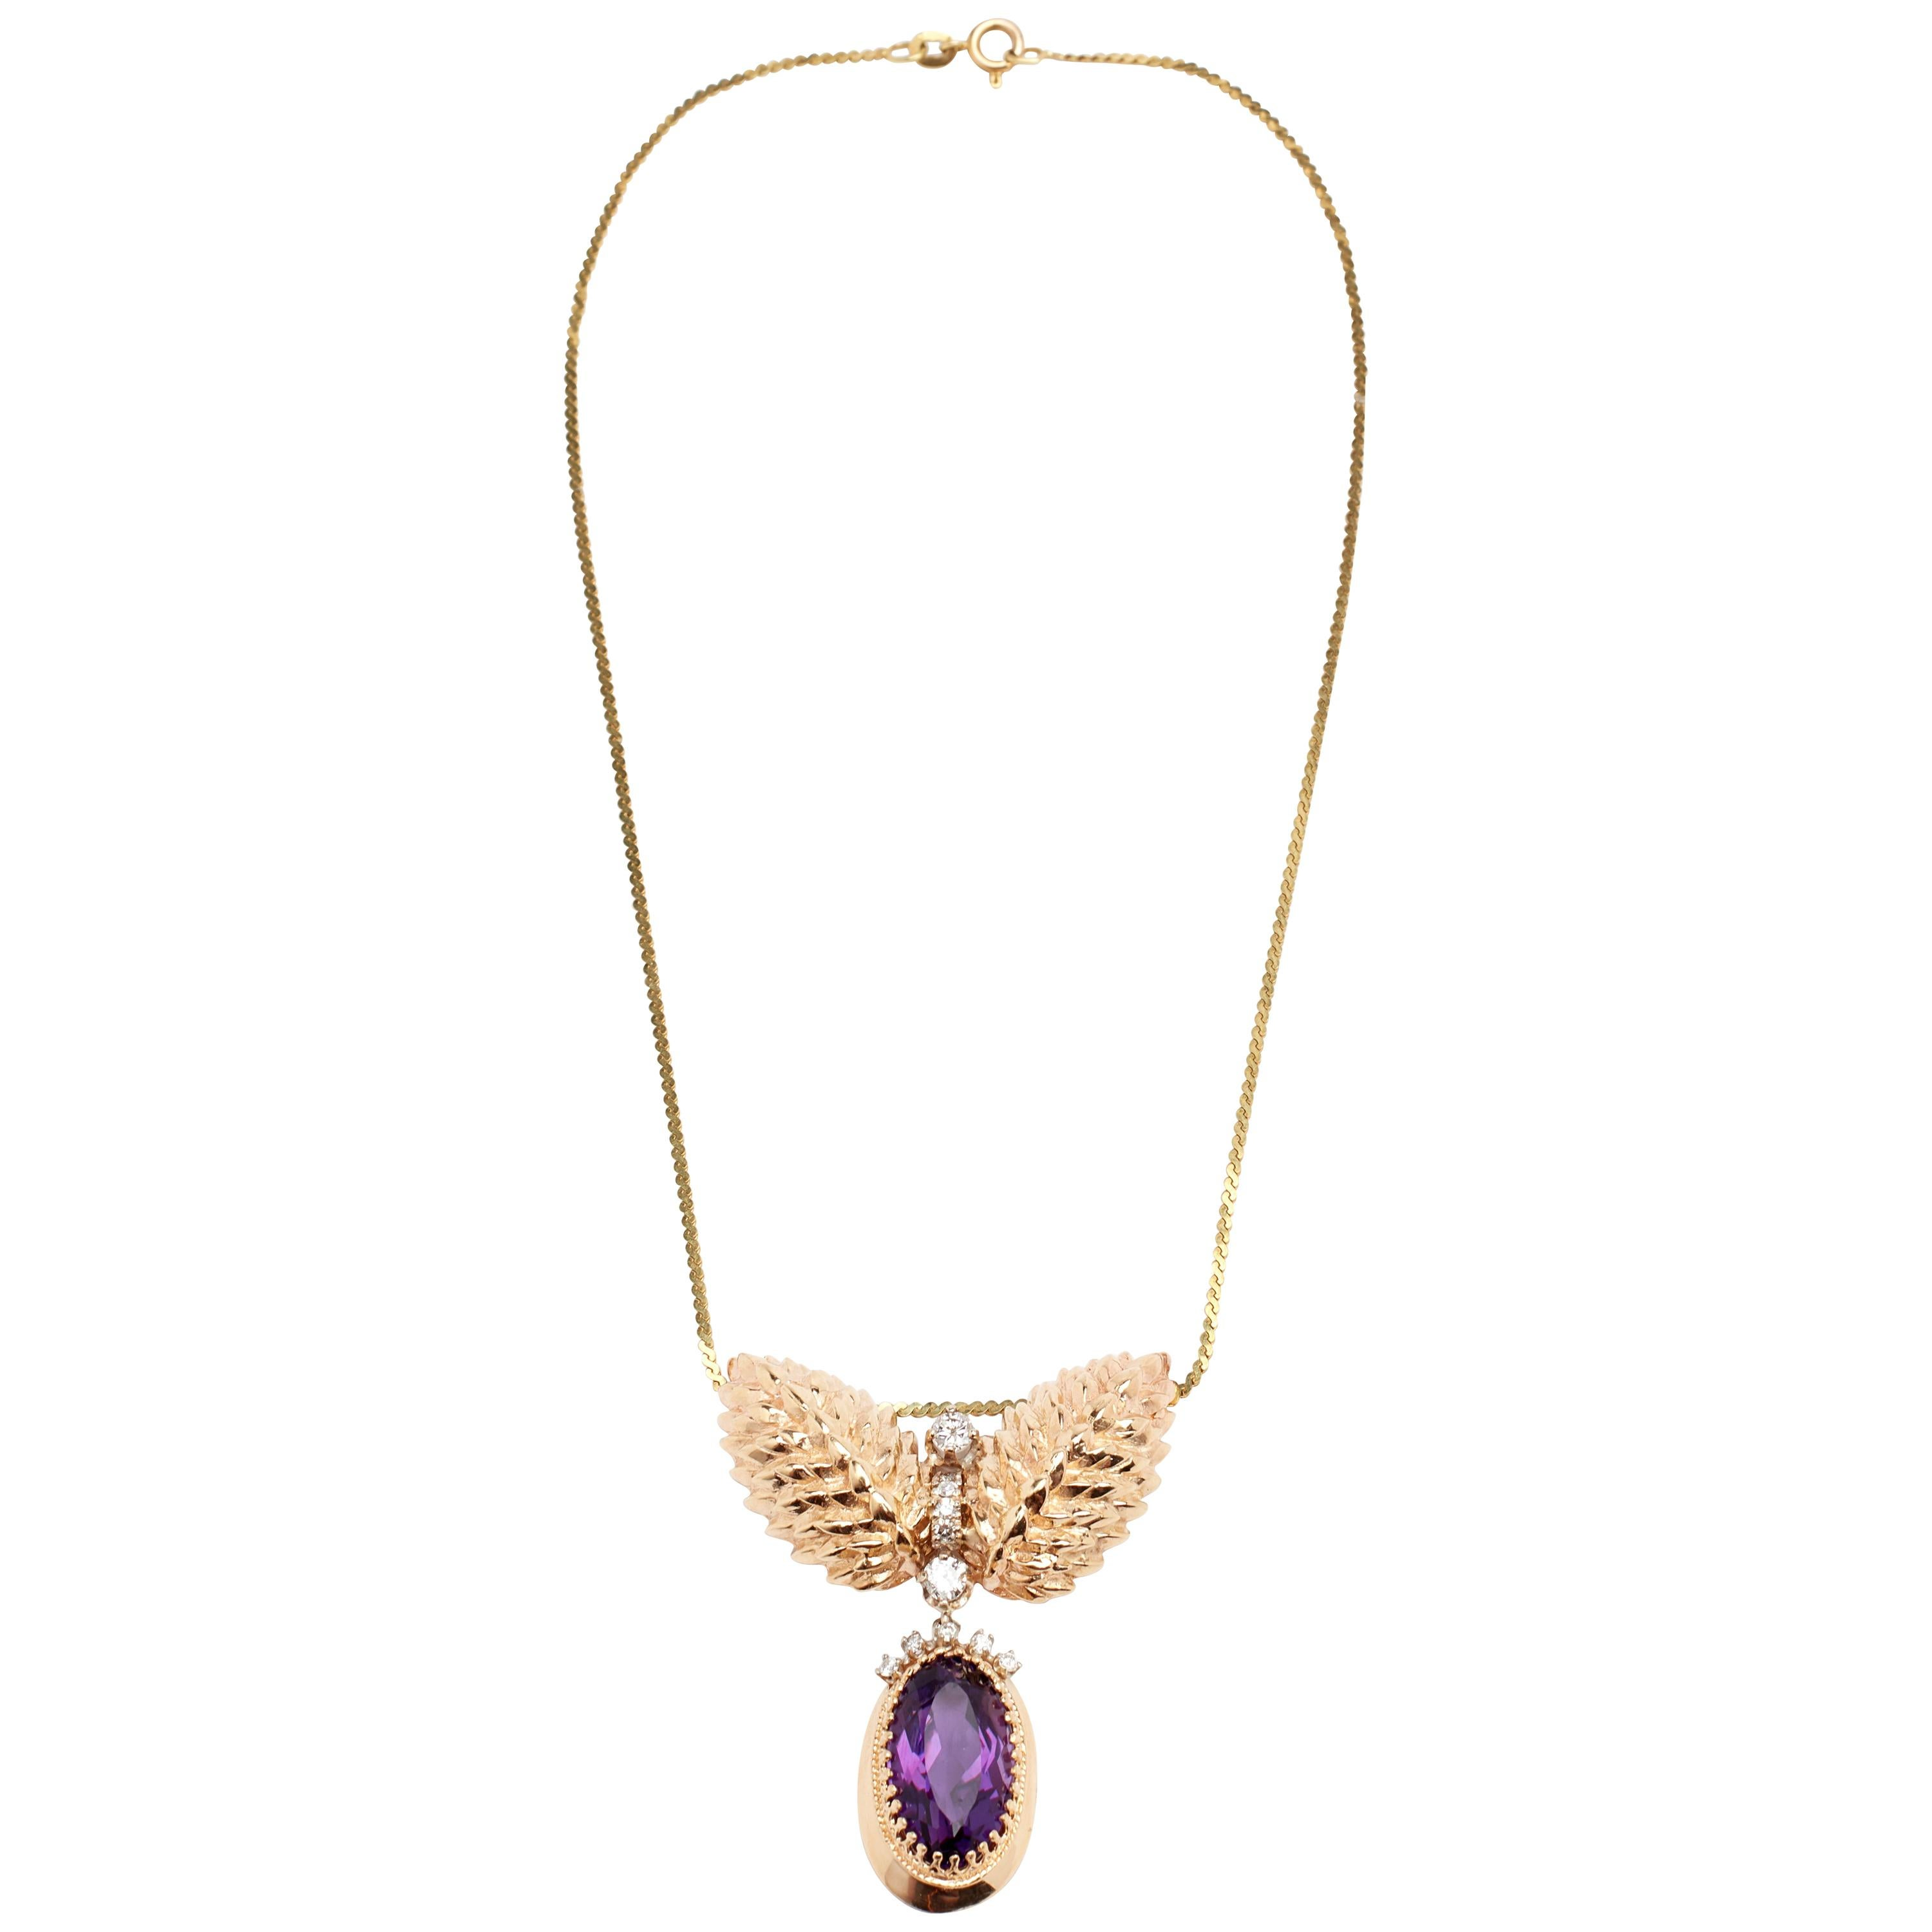 Large Oval Amethysts and Diamond Pendant Necklace with Chain